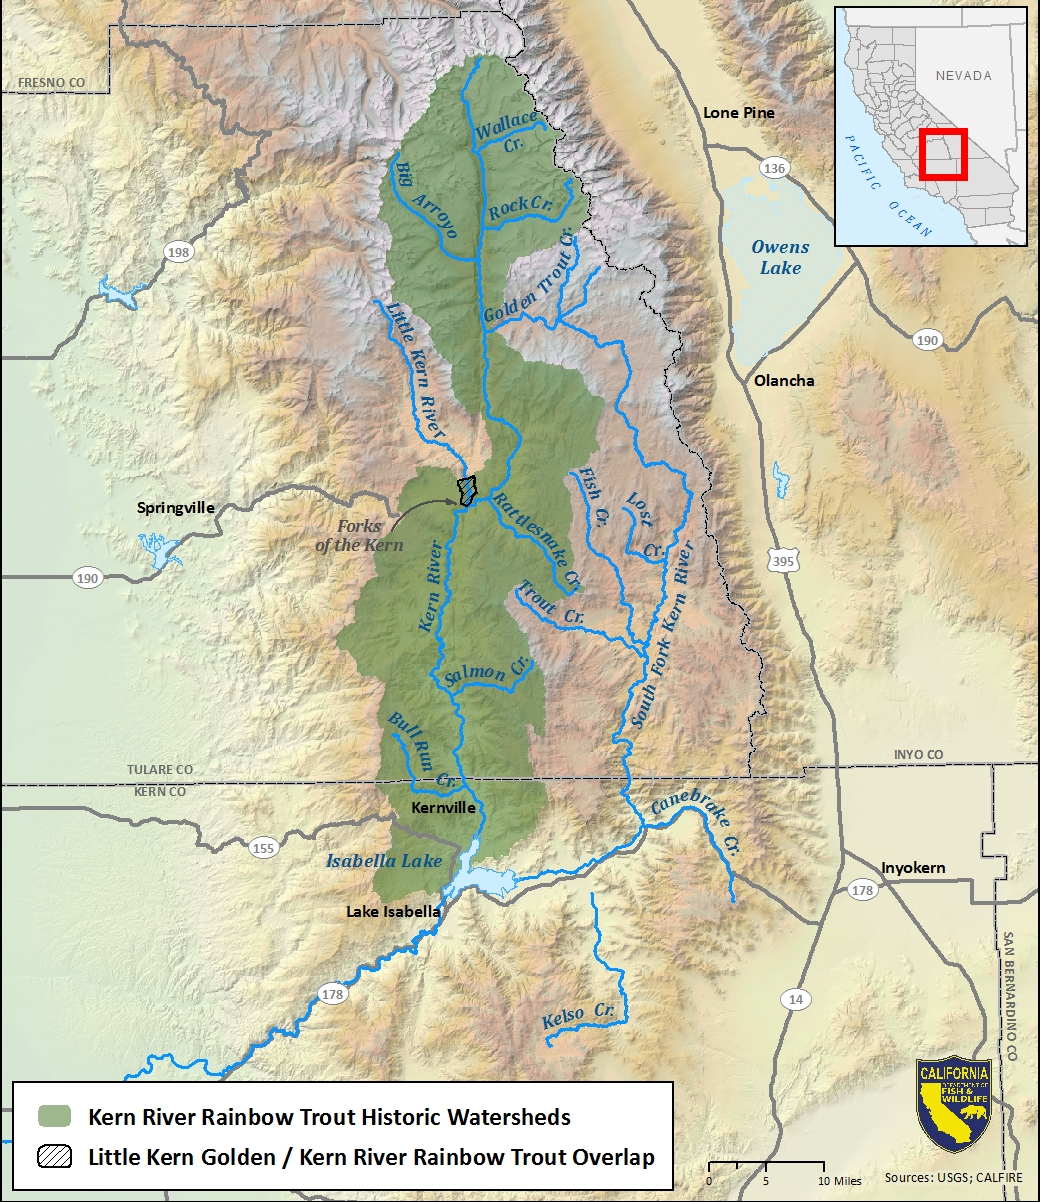 Map of Kern River rainbow trout historic watersheds-link opens in new window